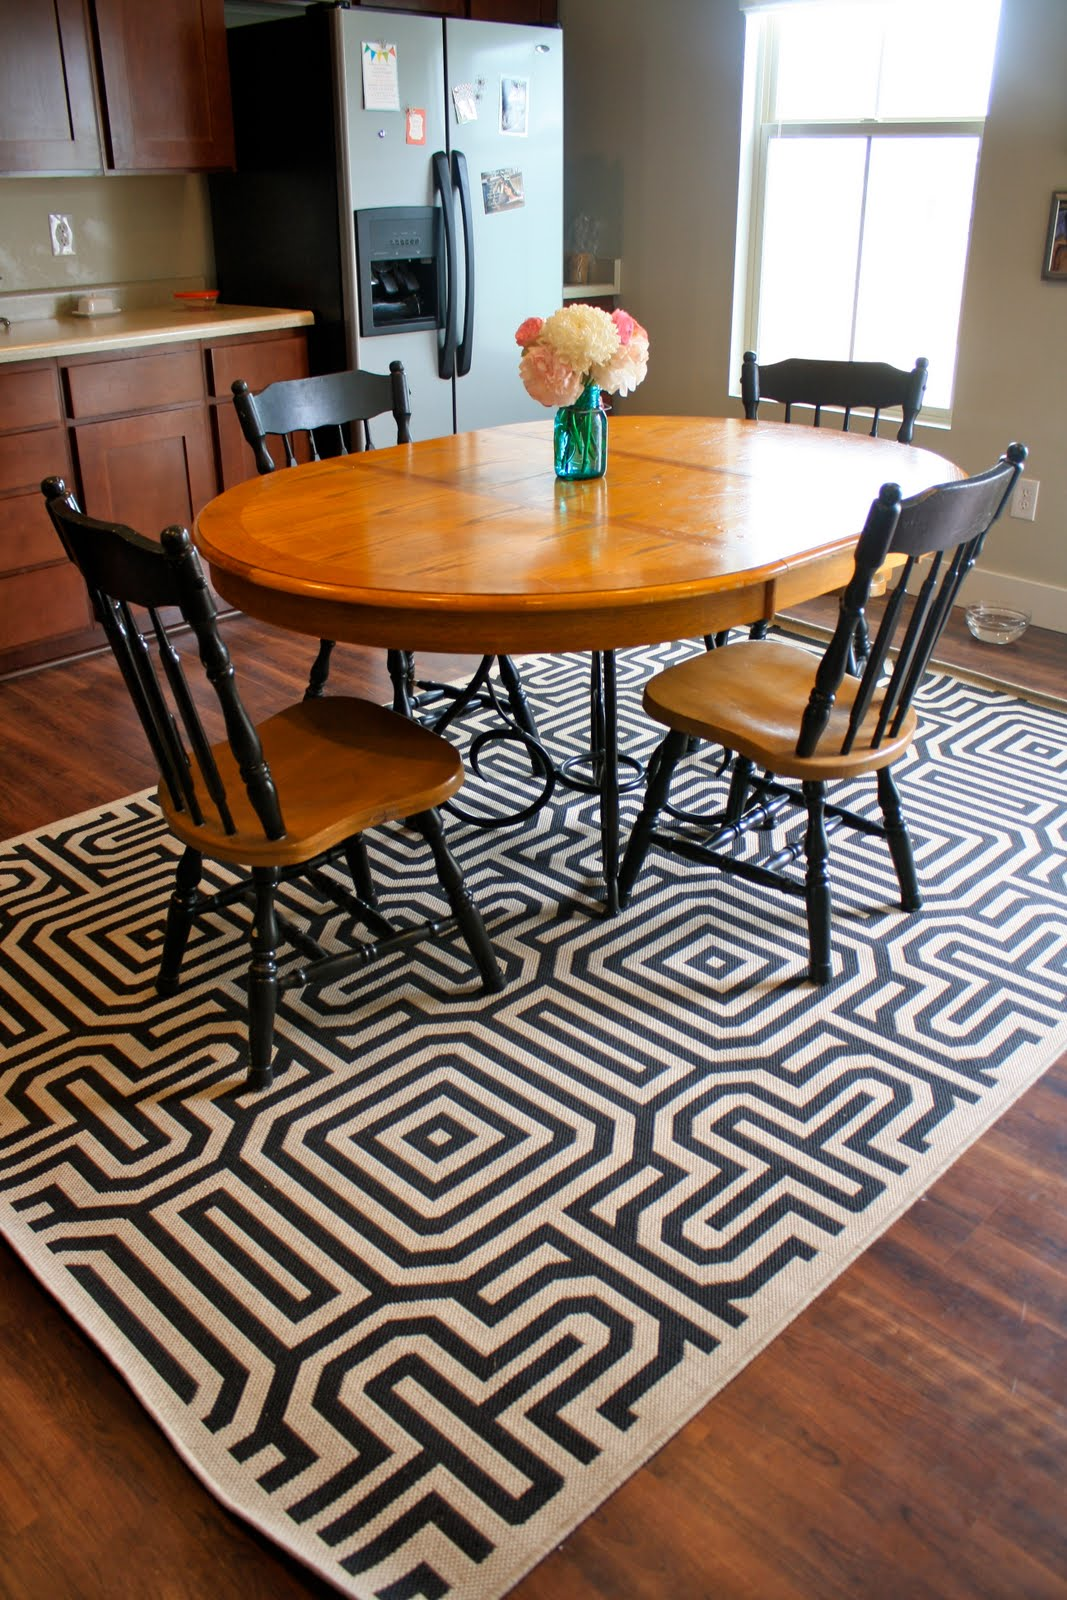 A rug that brings life and vitality into an otherwise simplistic dining room